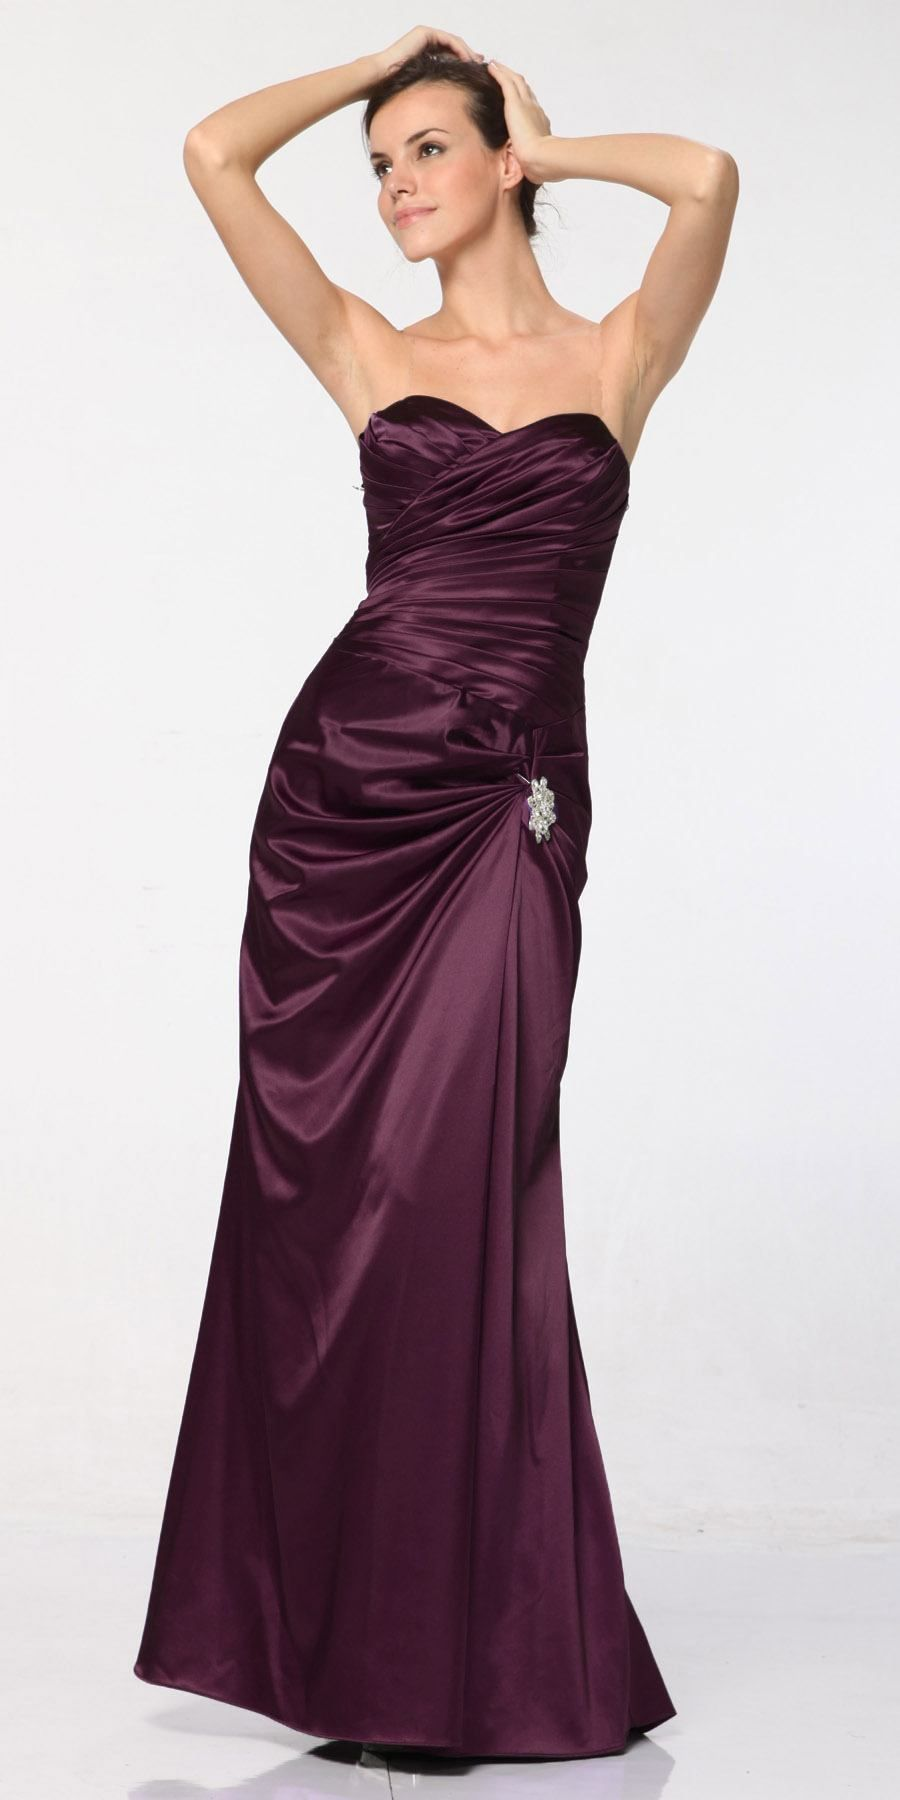 Silver Satin Prom Dress Pleated Bodice Strapless ...